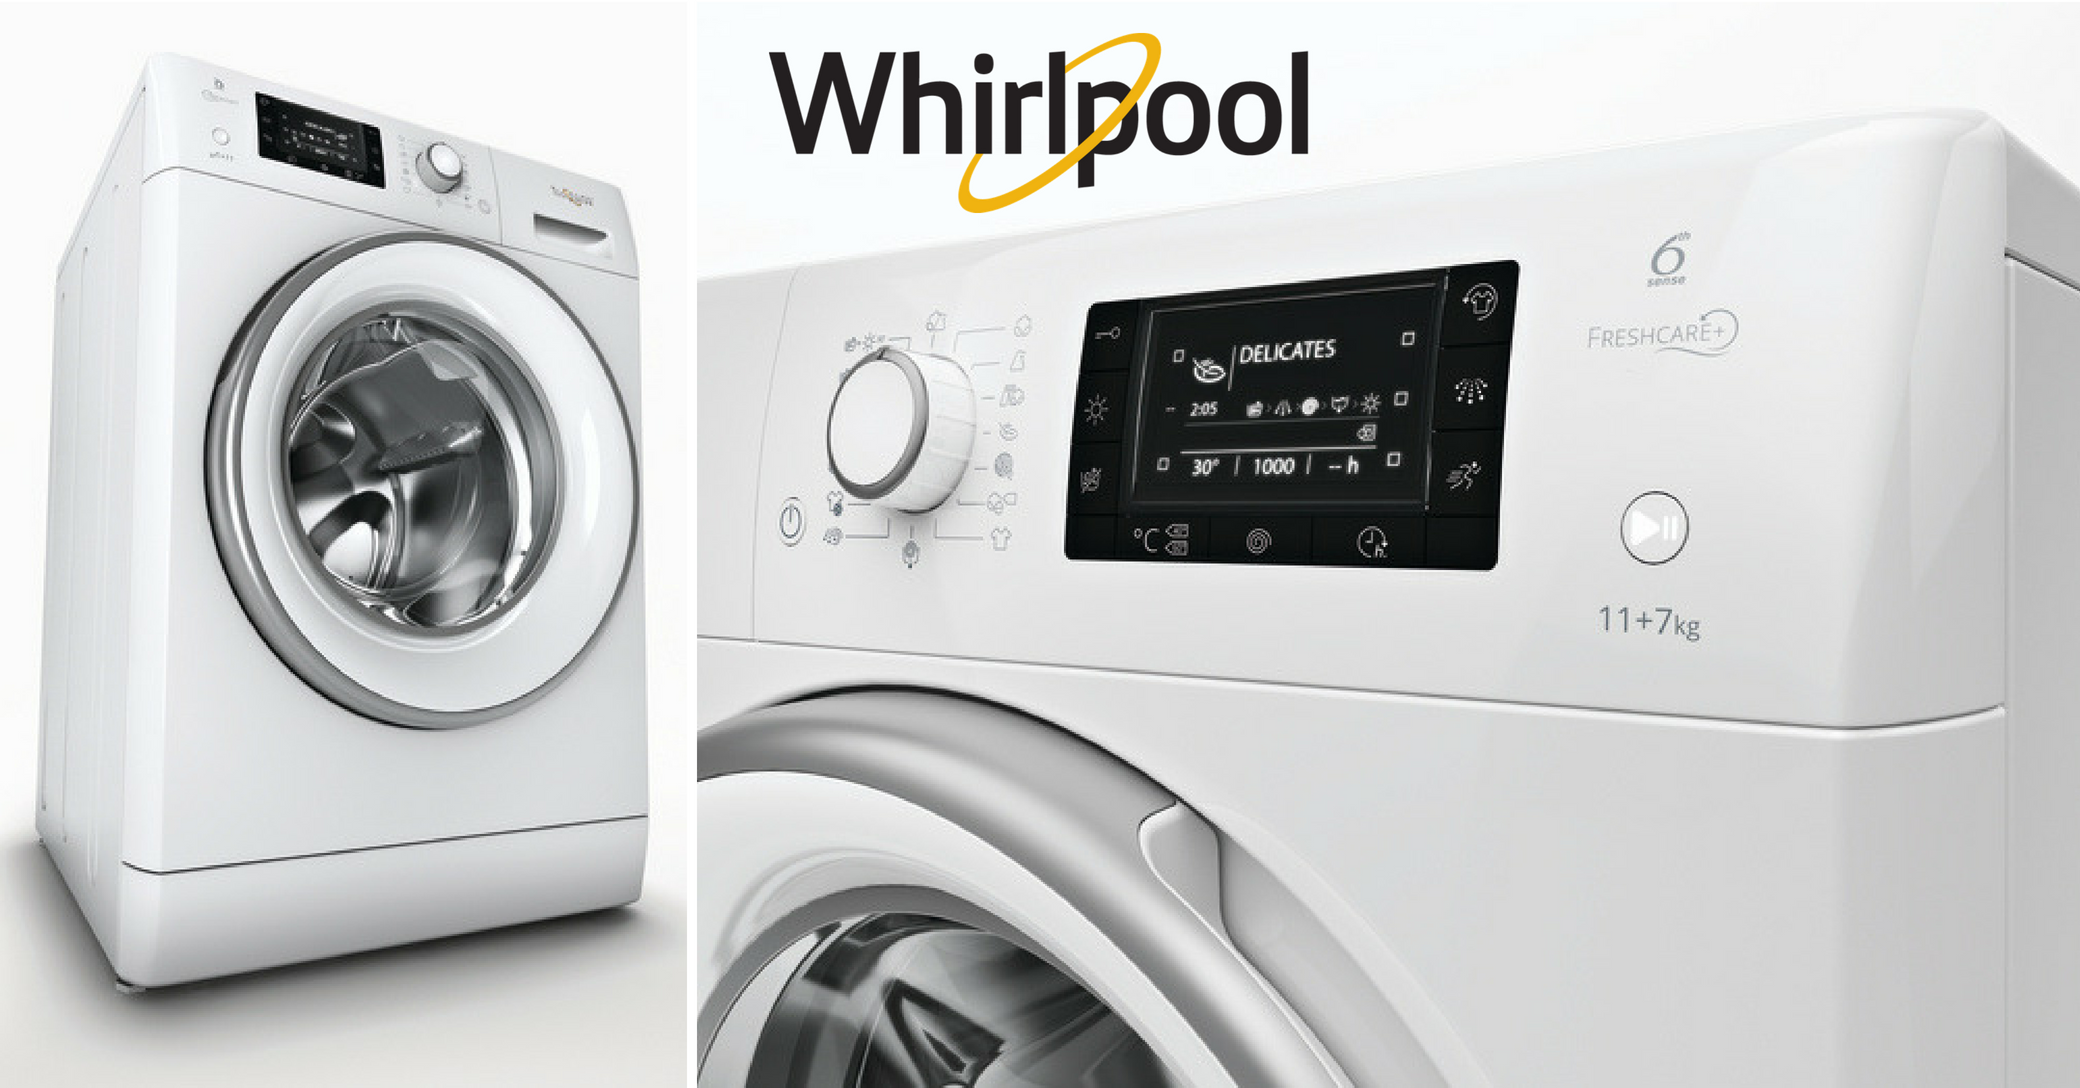 Whirlpool's FreshCare + keeps your garments fresh for up to